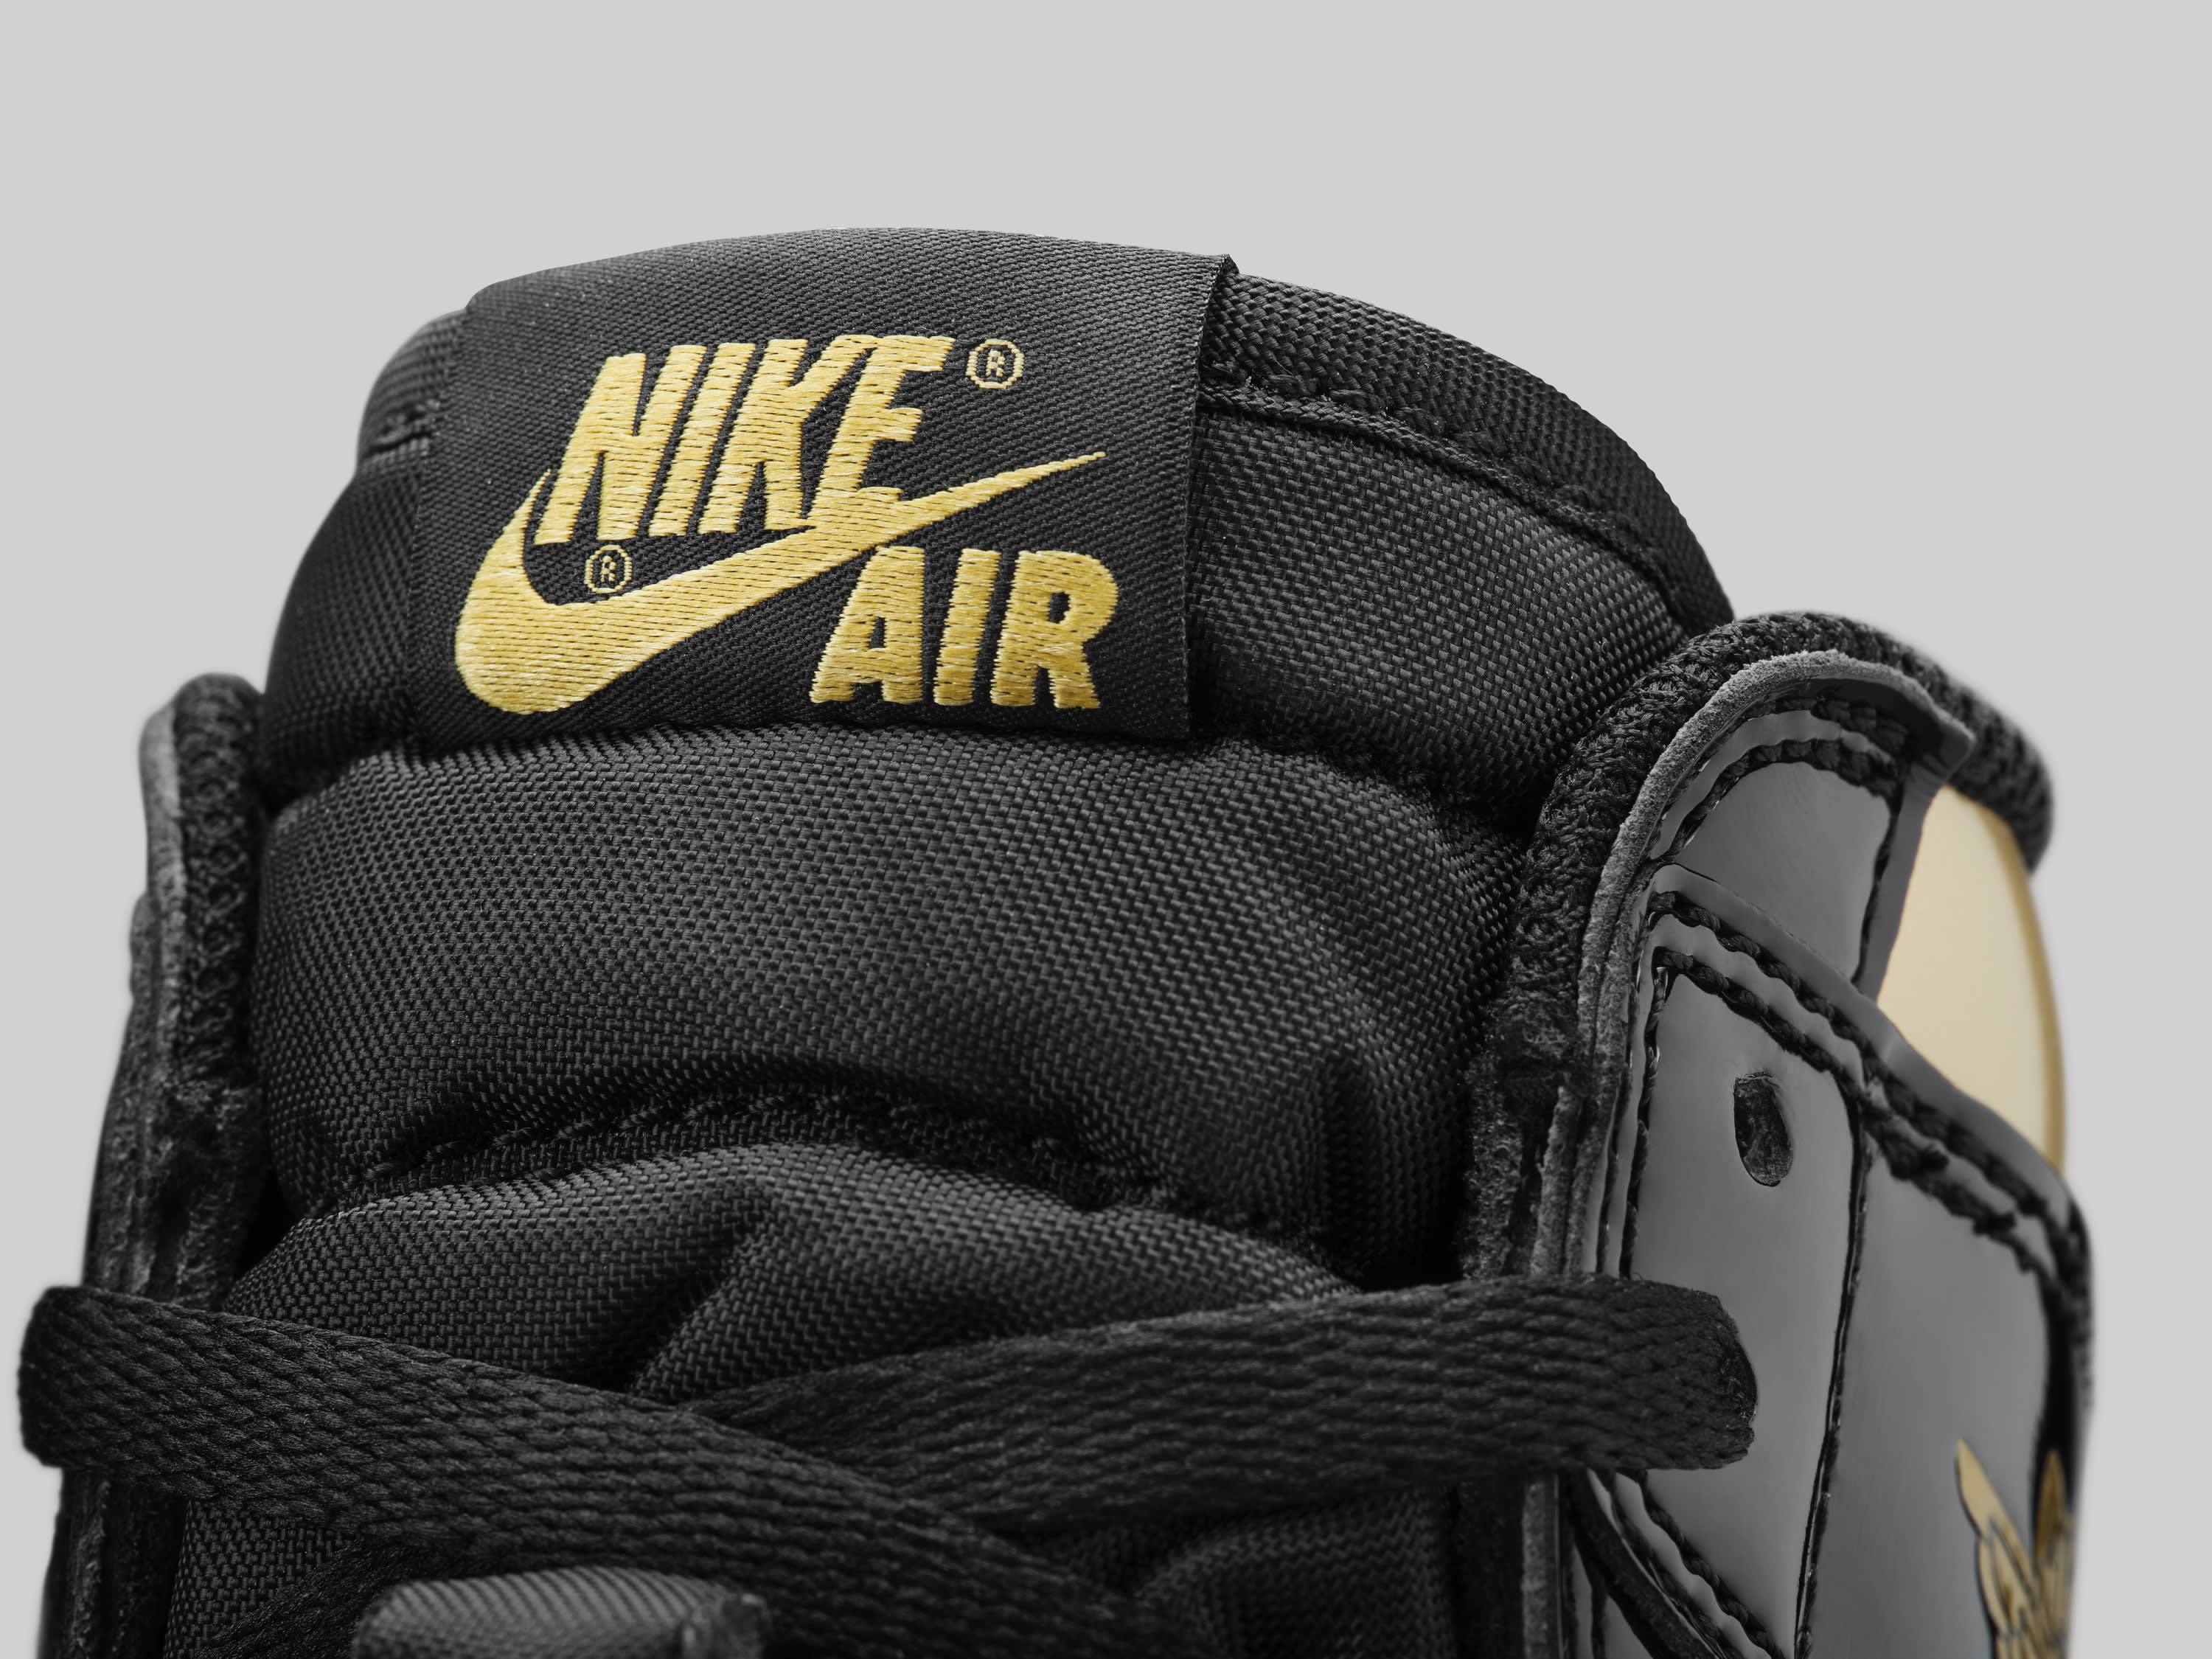 Air Jordan 1 Retro High OG 'Black/Gold' 555088-032 Tongue